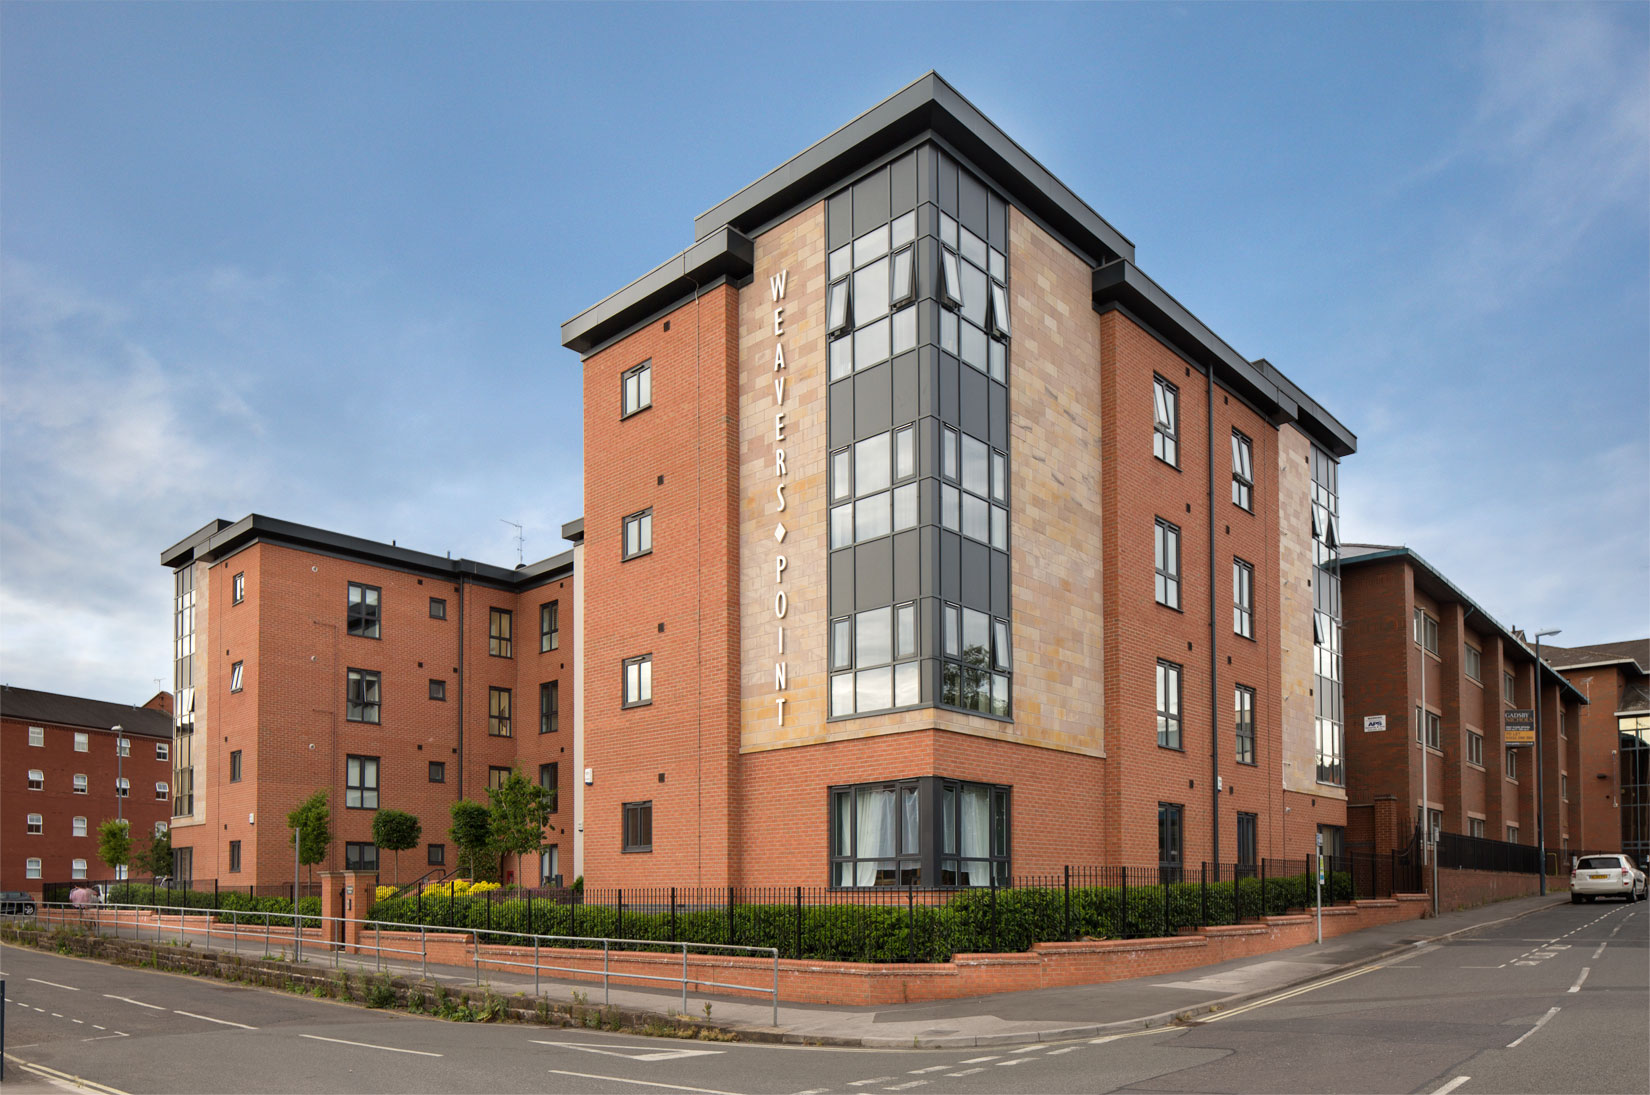 New residential apartments in Derby